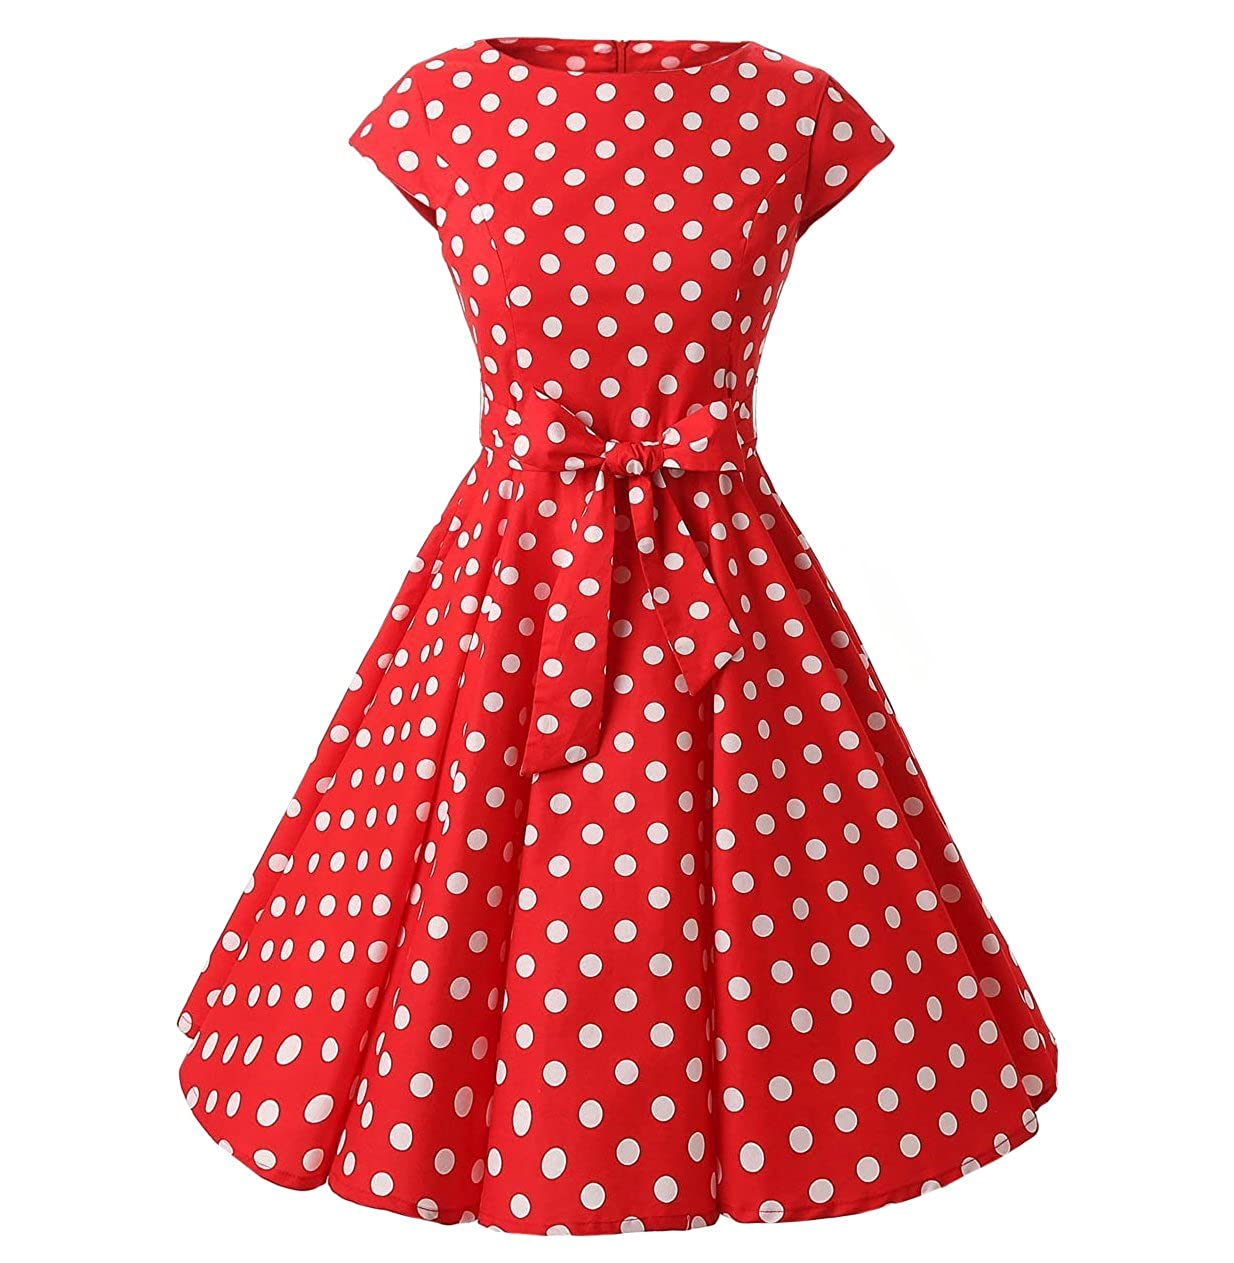 8297bbed6b044 DAROJ Women 1950's Capshoulder Polka Dots Rockabilly Full Circle Swing Dress  at Amazon Women's Clothing store: